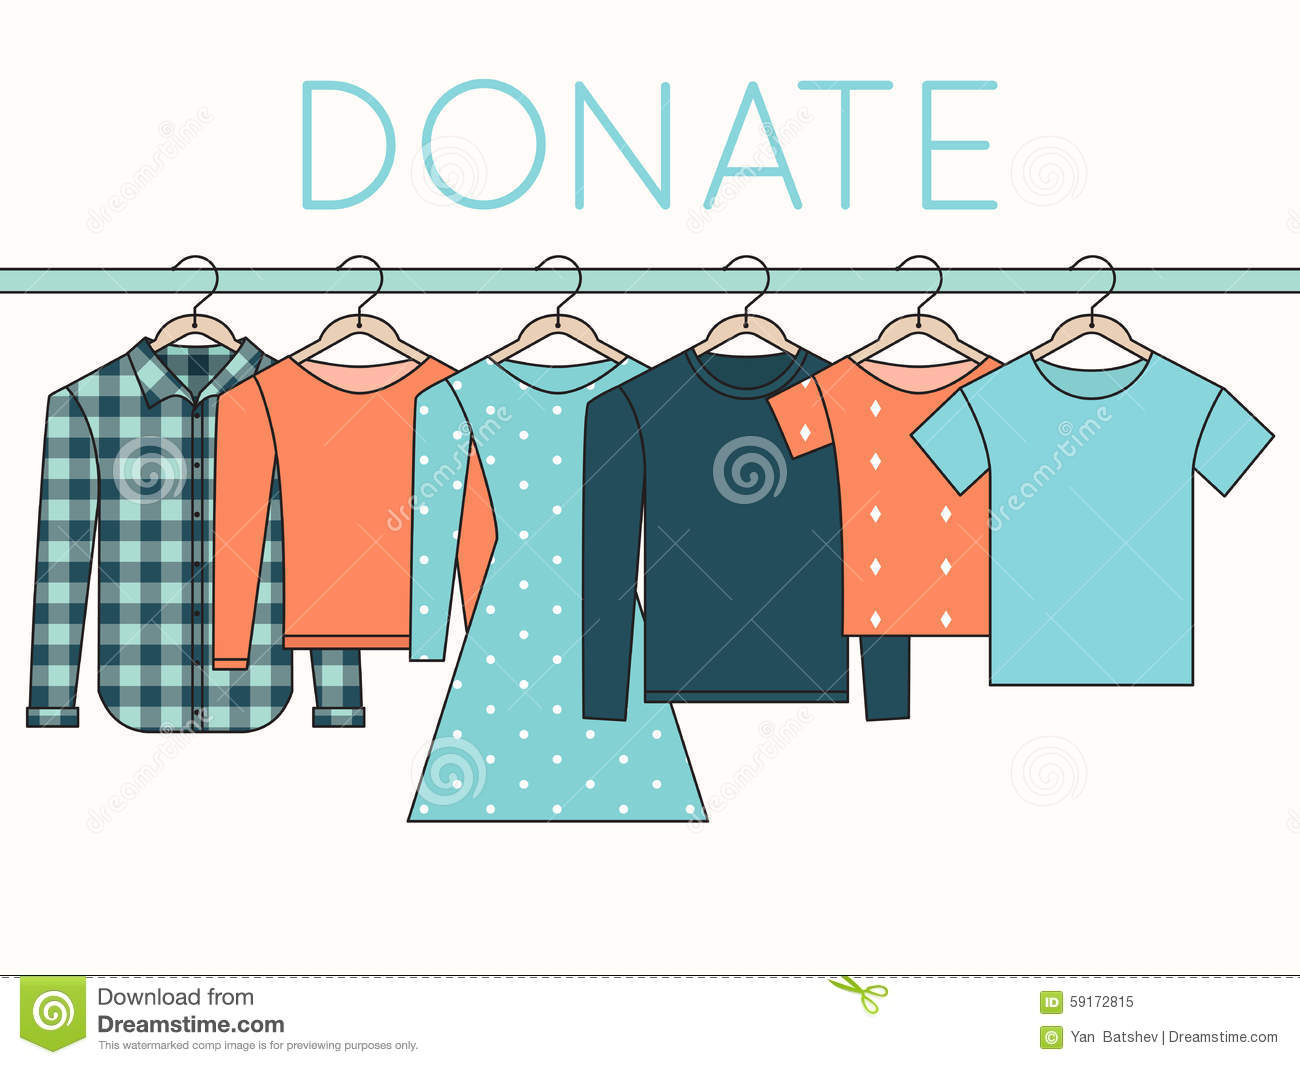 Shirts sweatshirts and dress on hangers donate clothes for Shirts that donate to charity